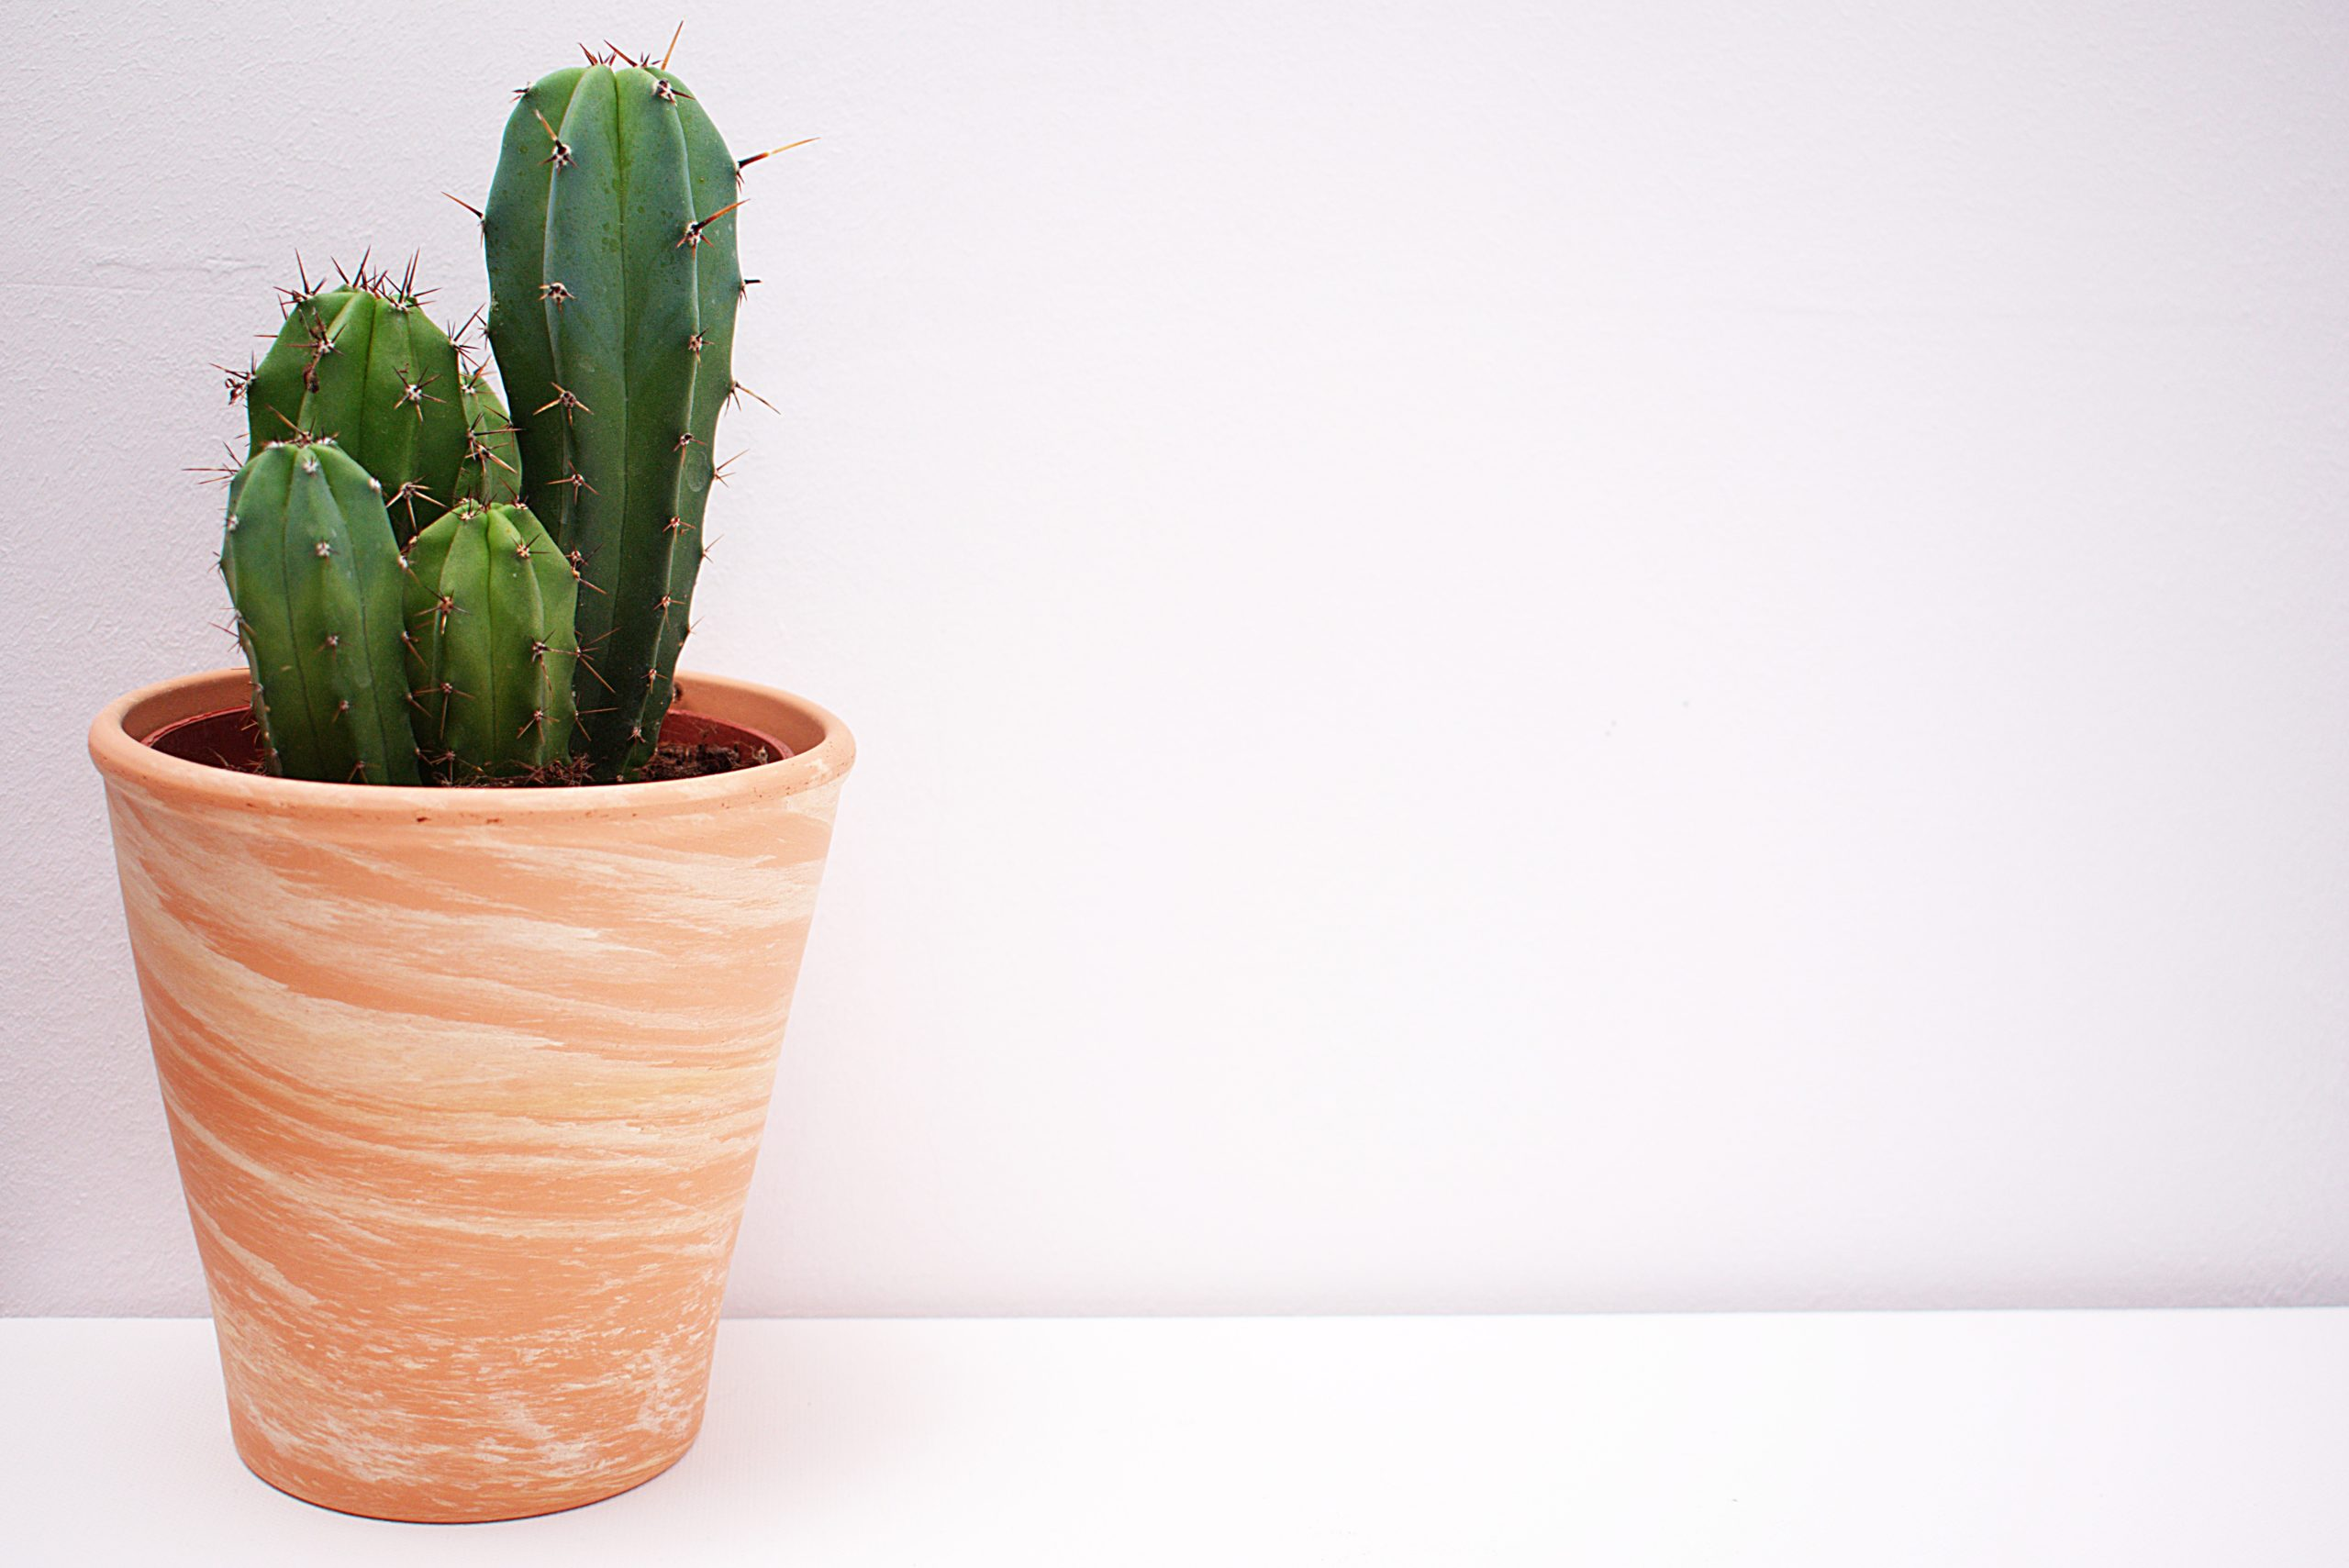 A cactus in a vase on a table